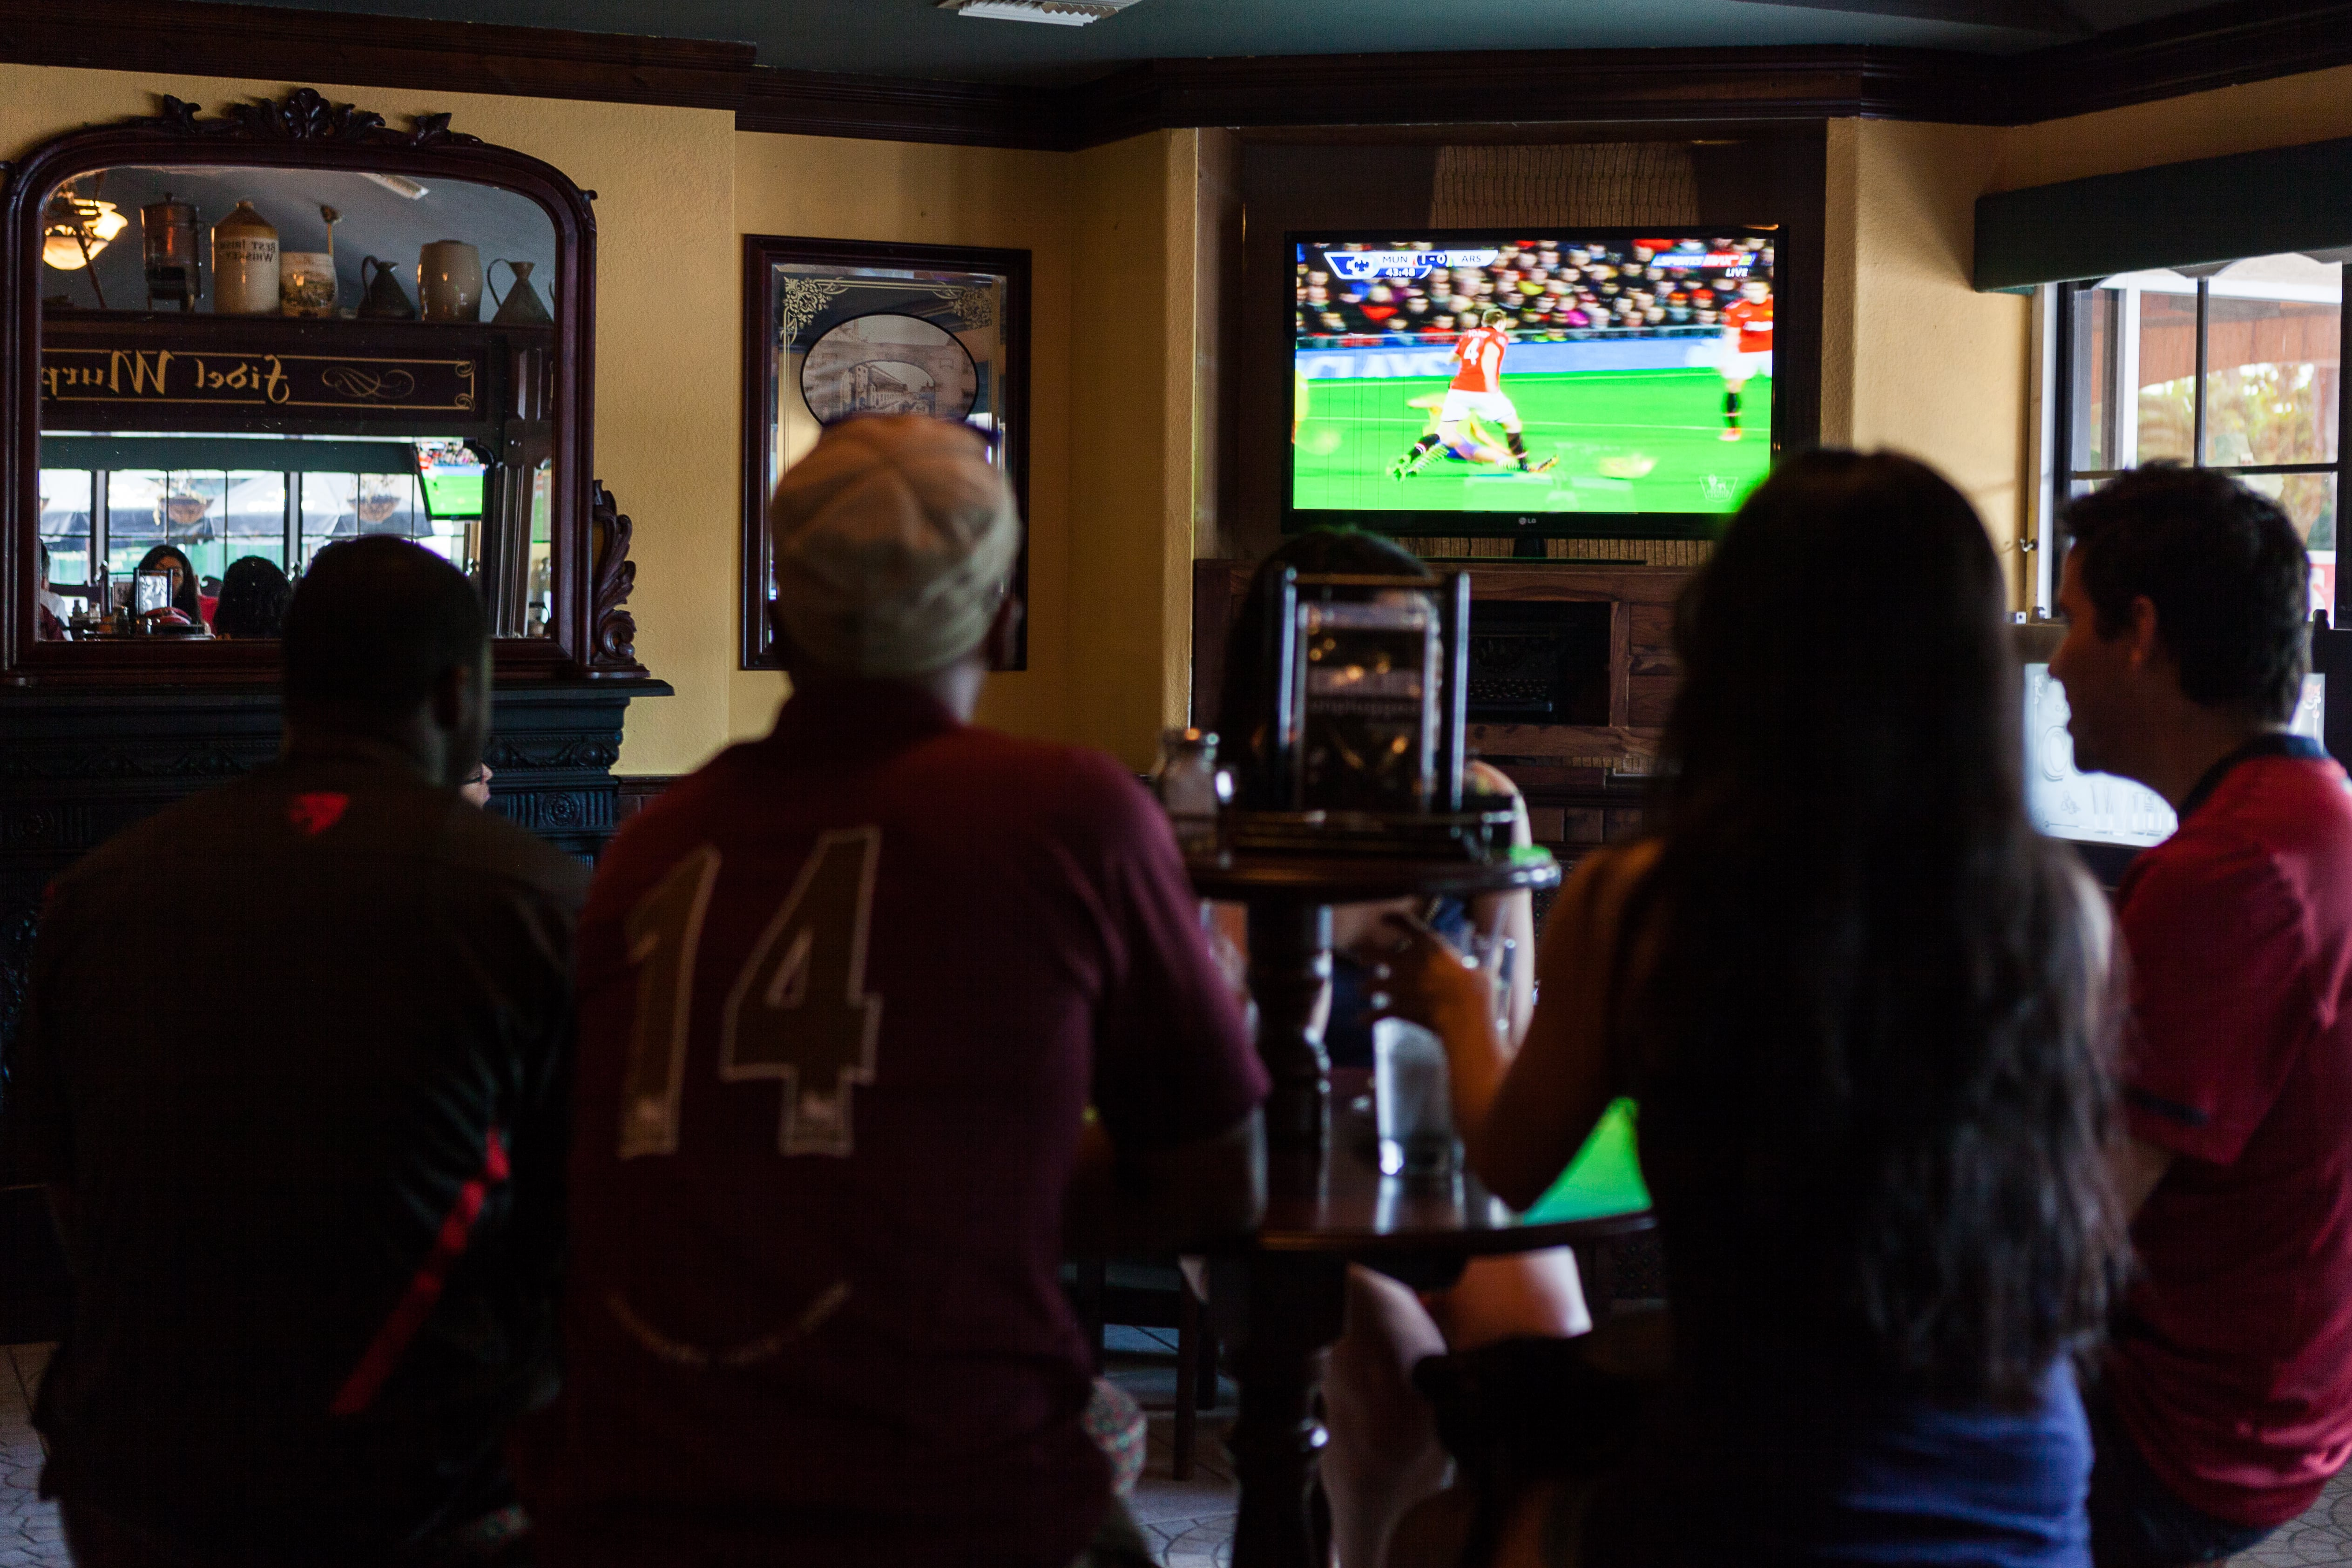 Fidels Cayman Watching a Football Game